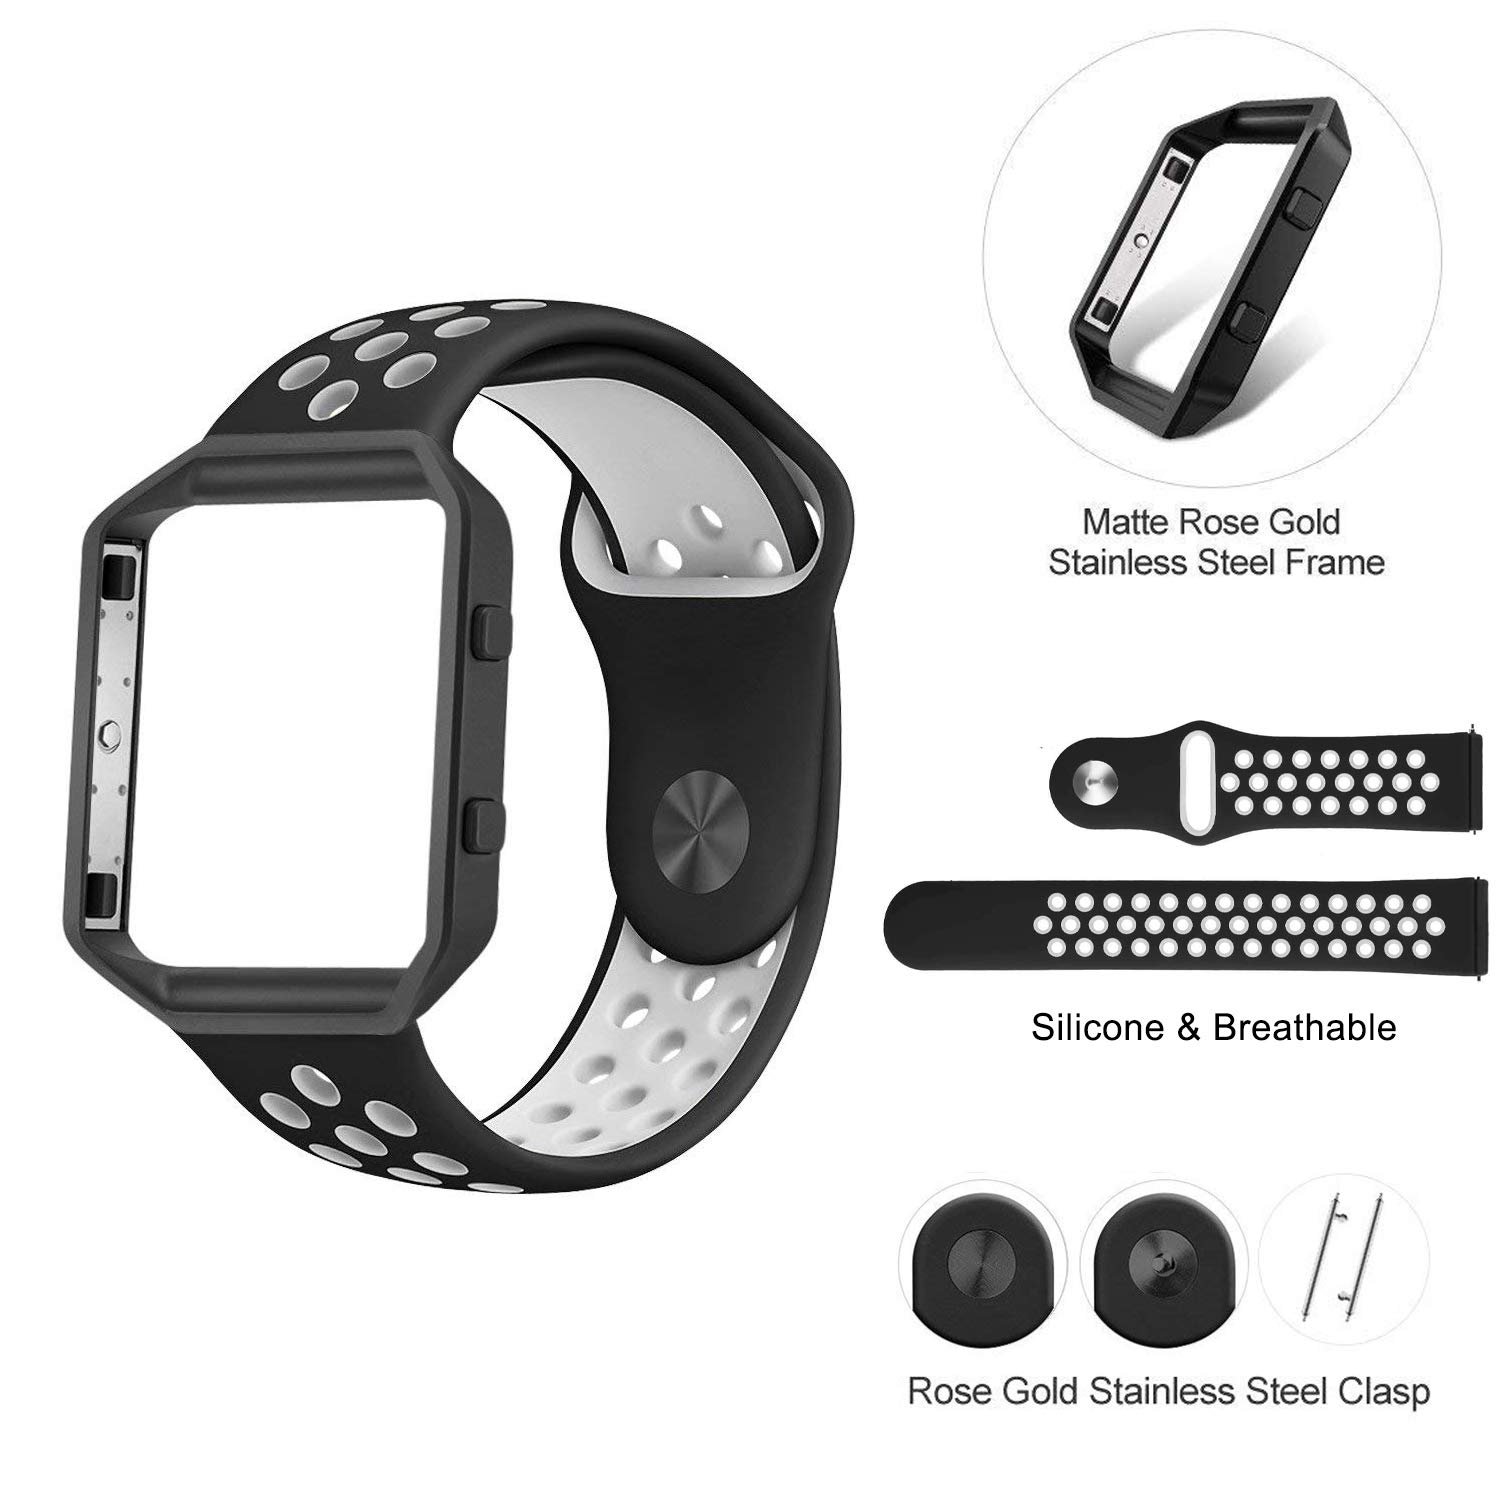 Black//White Band with Black Frame,Large:6.8-8.8 Sport Breathable Silicone Band with Frame for Fitbit Blaze Smart Fitness Tracker Large:6.8-8.8 sxd/_1512345 BBSUYOS Replacement Bands Compatible for Fitbit Blaze Bands